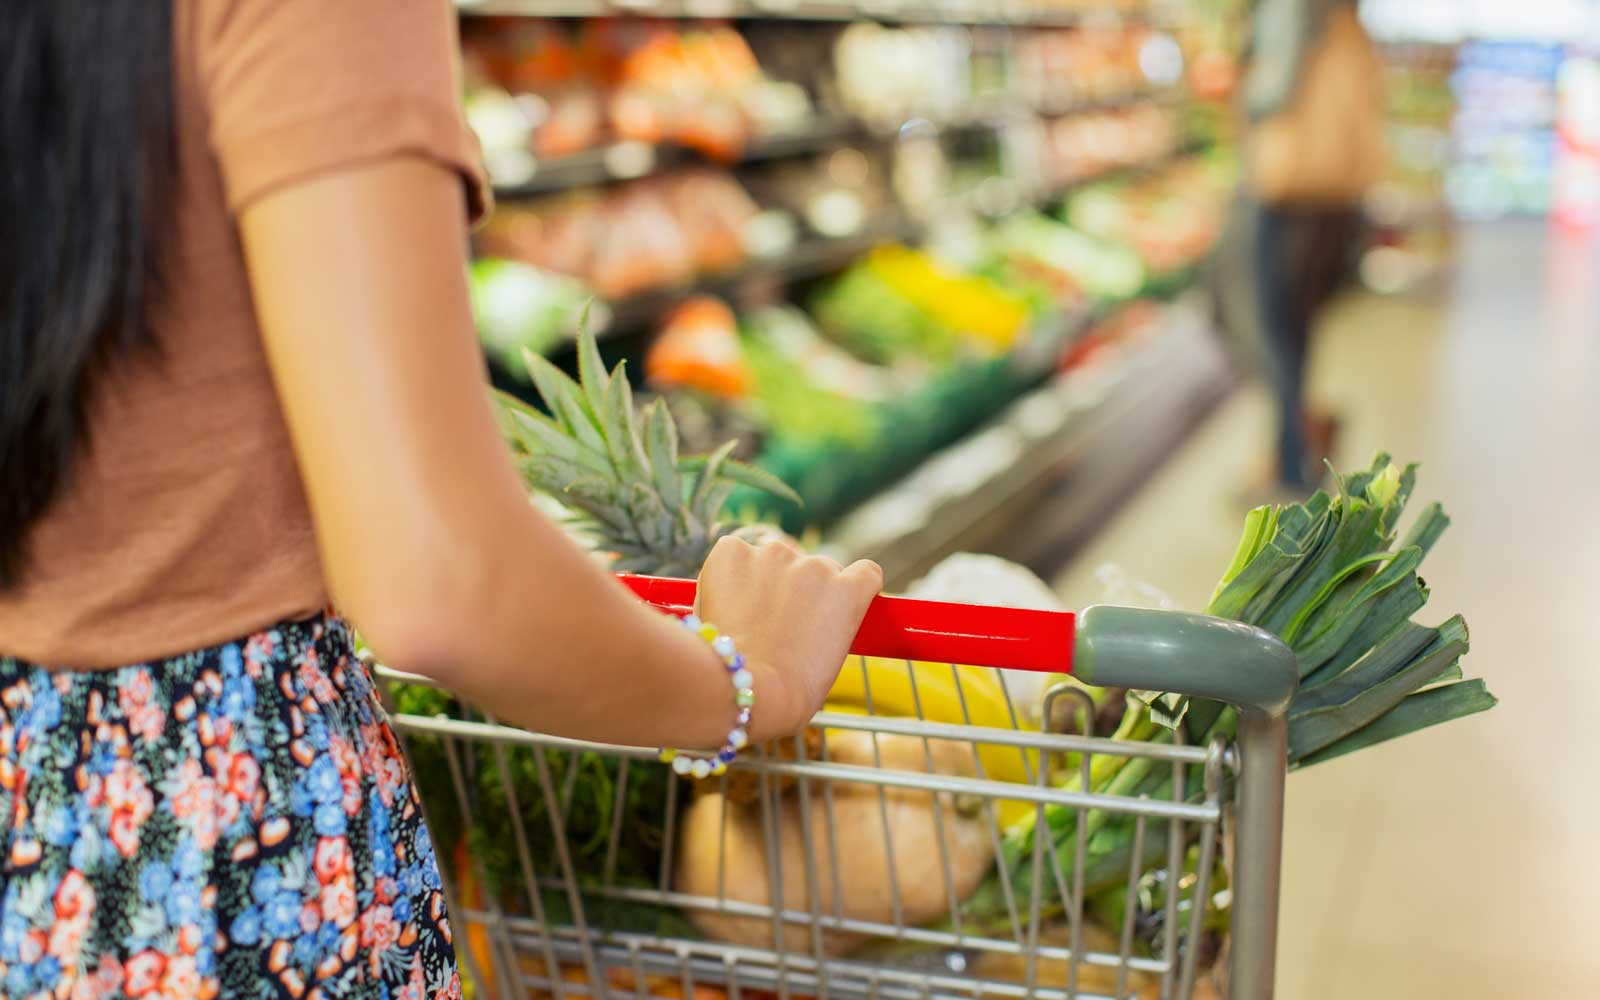 8 Tips to Being a Better Grocery Shopper